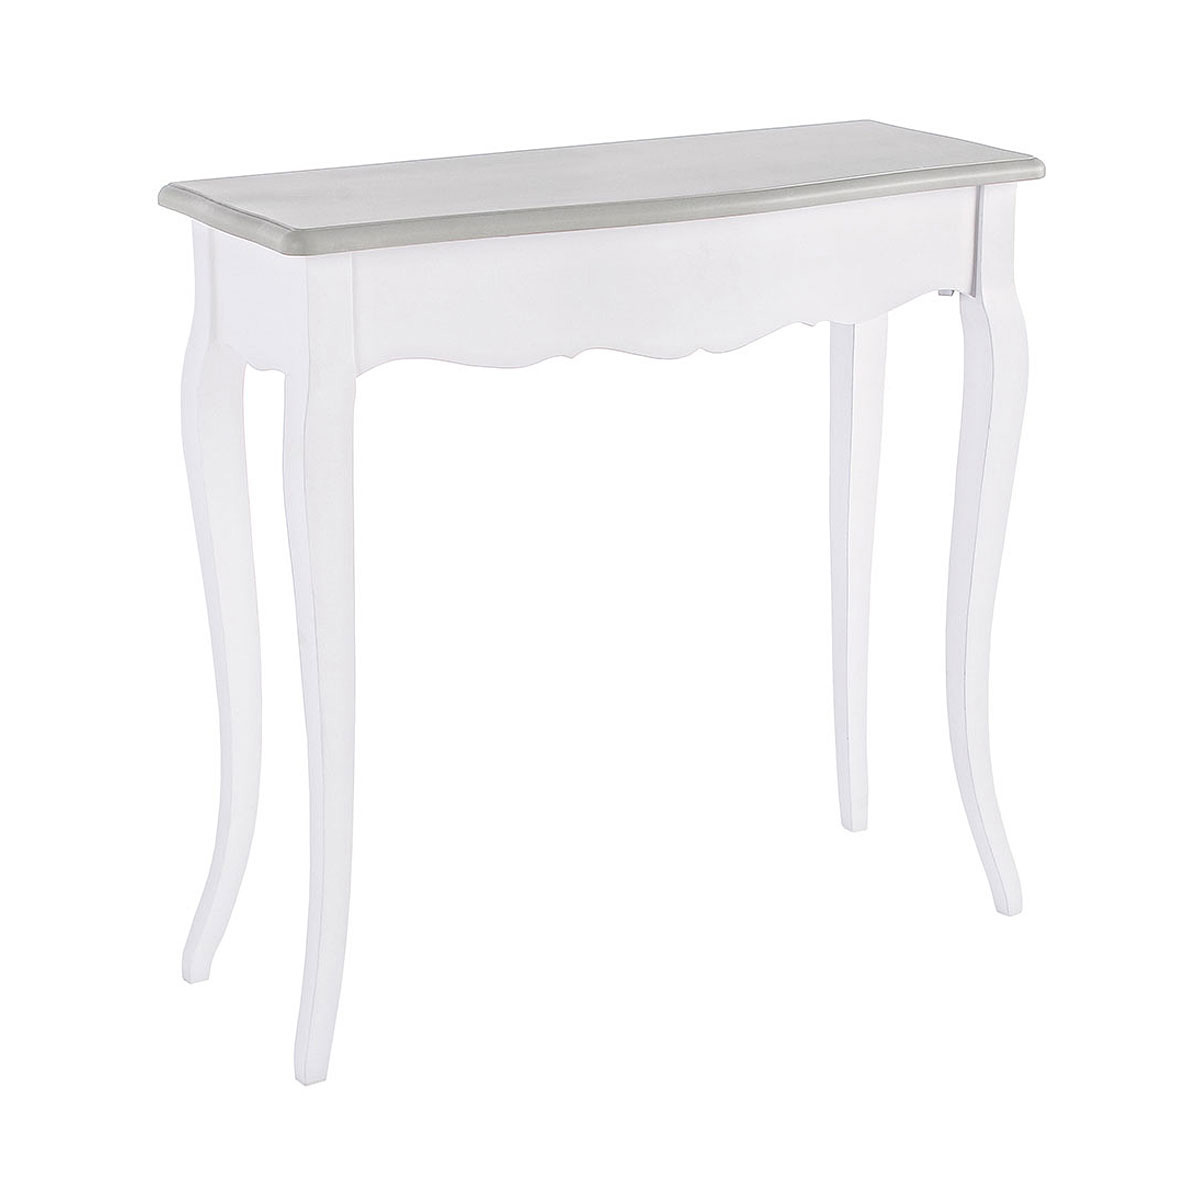 Photos 1: Bizzotto Fixed wood console l. 75 x 28 0744349